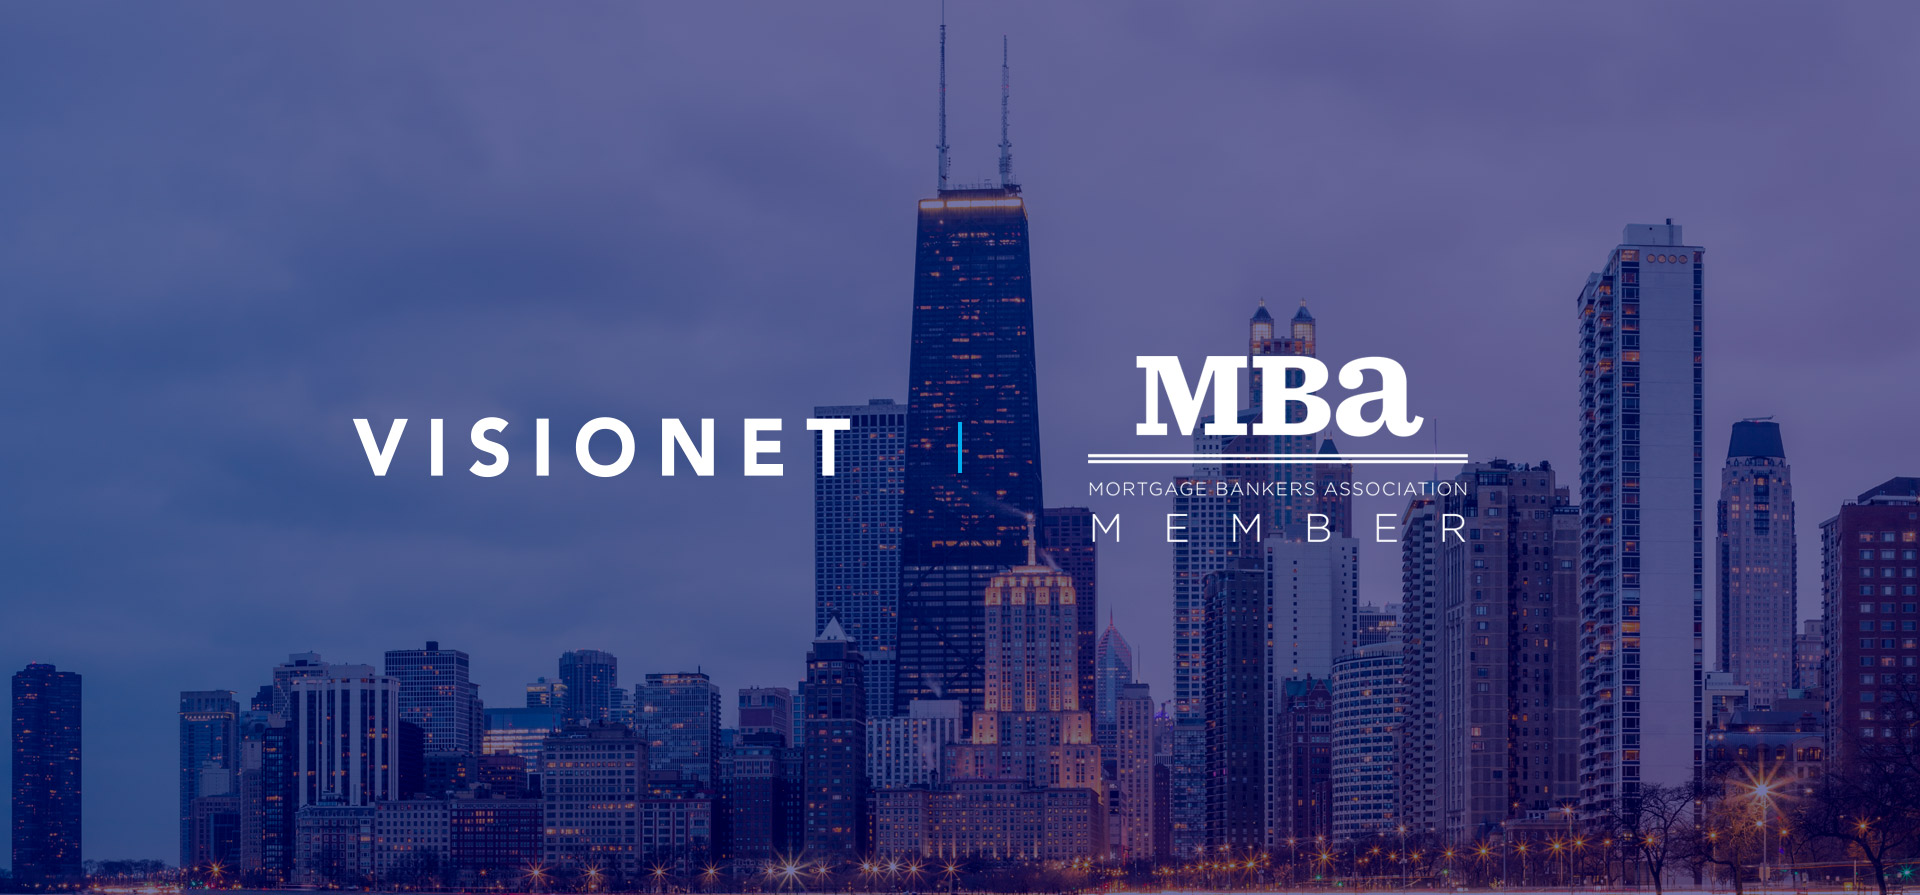 Visionet to present Uniform Closing Dataset (UCD) Solution at MBA Technology Conference in Chicago